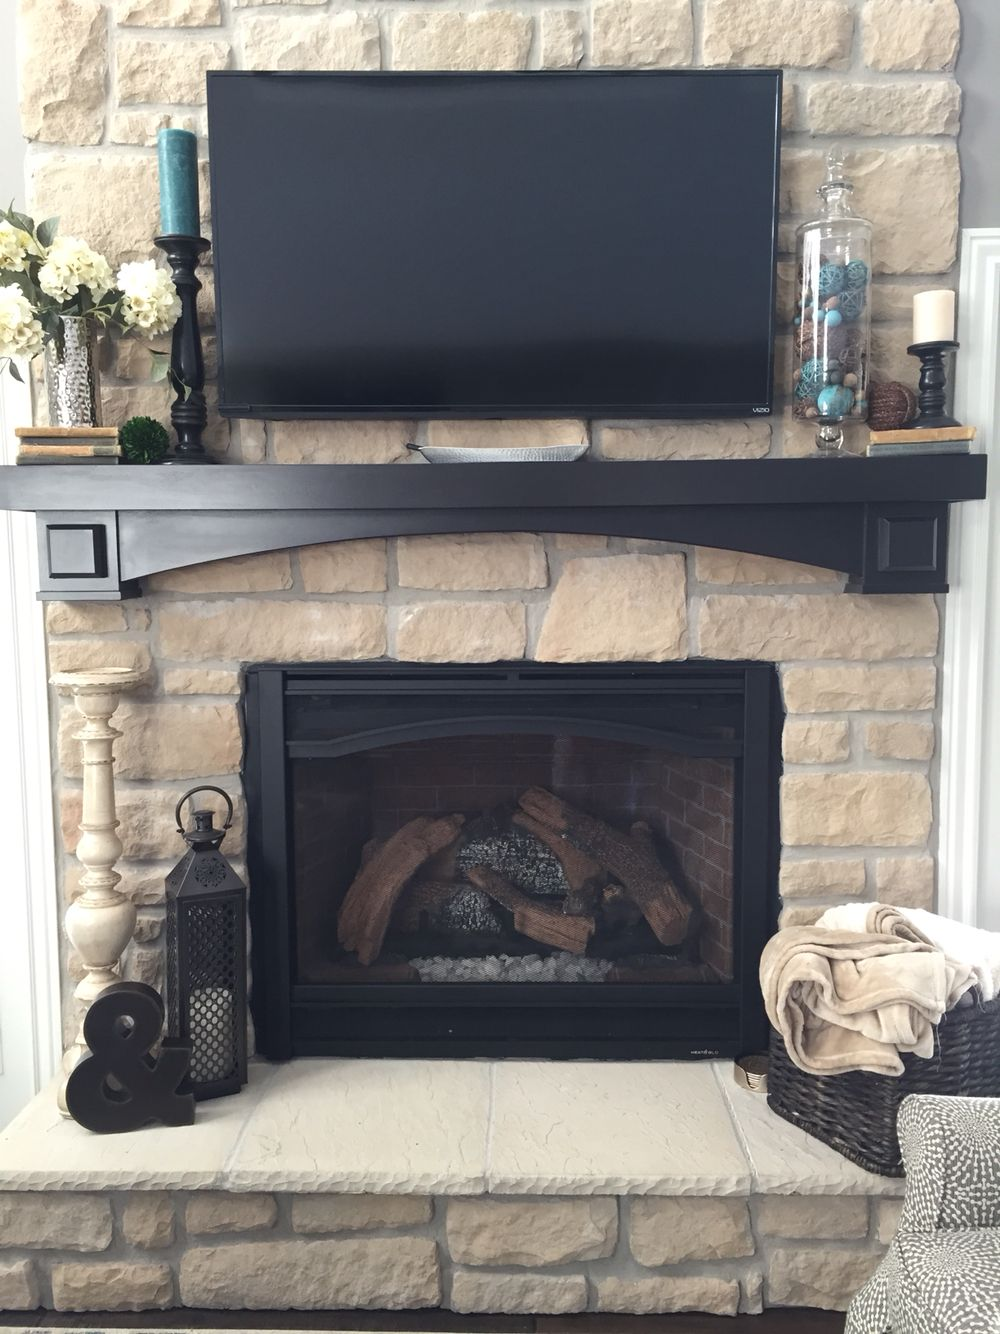 pier one fireplace decor on fireplace mantel decor with tv fireplace mantel decor farmhouse fireplace decor farmhouse mantle decor fireplace mantel decor with tv